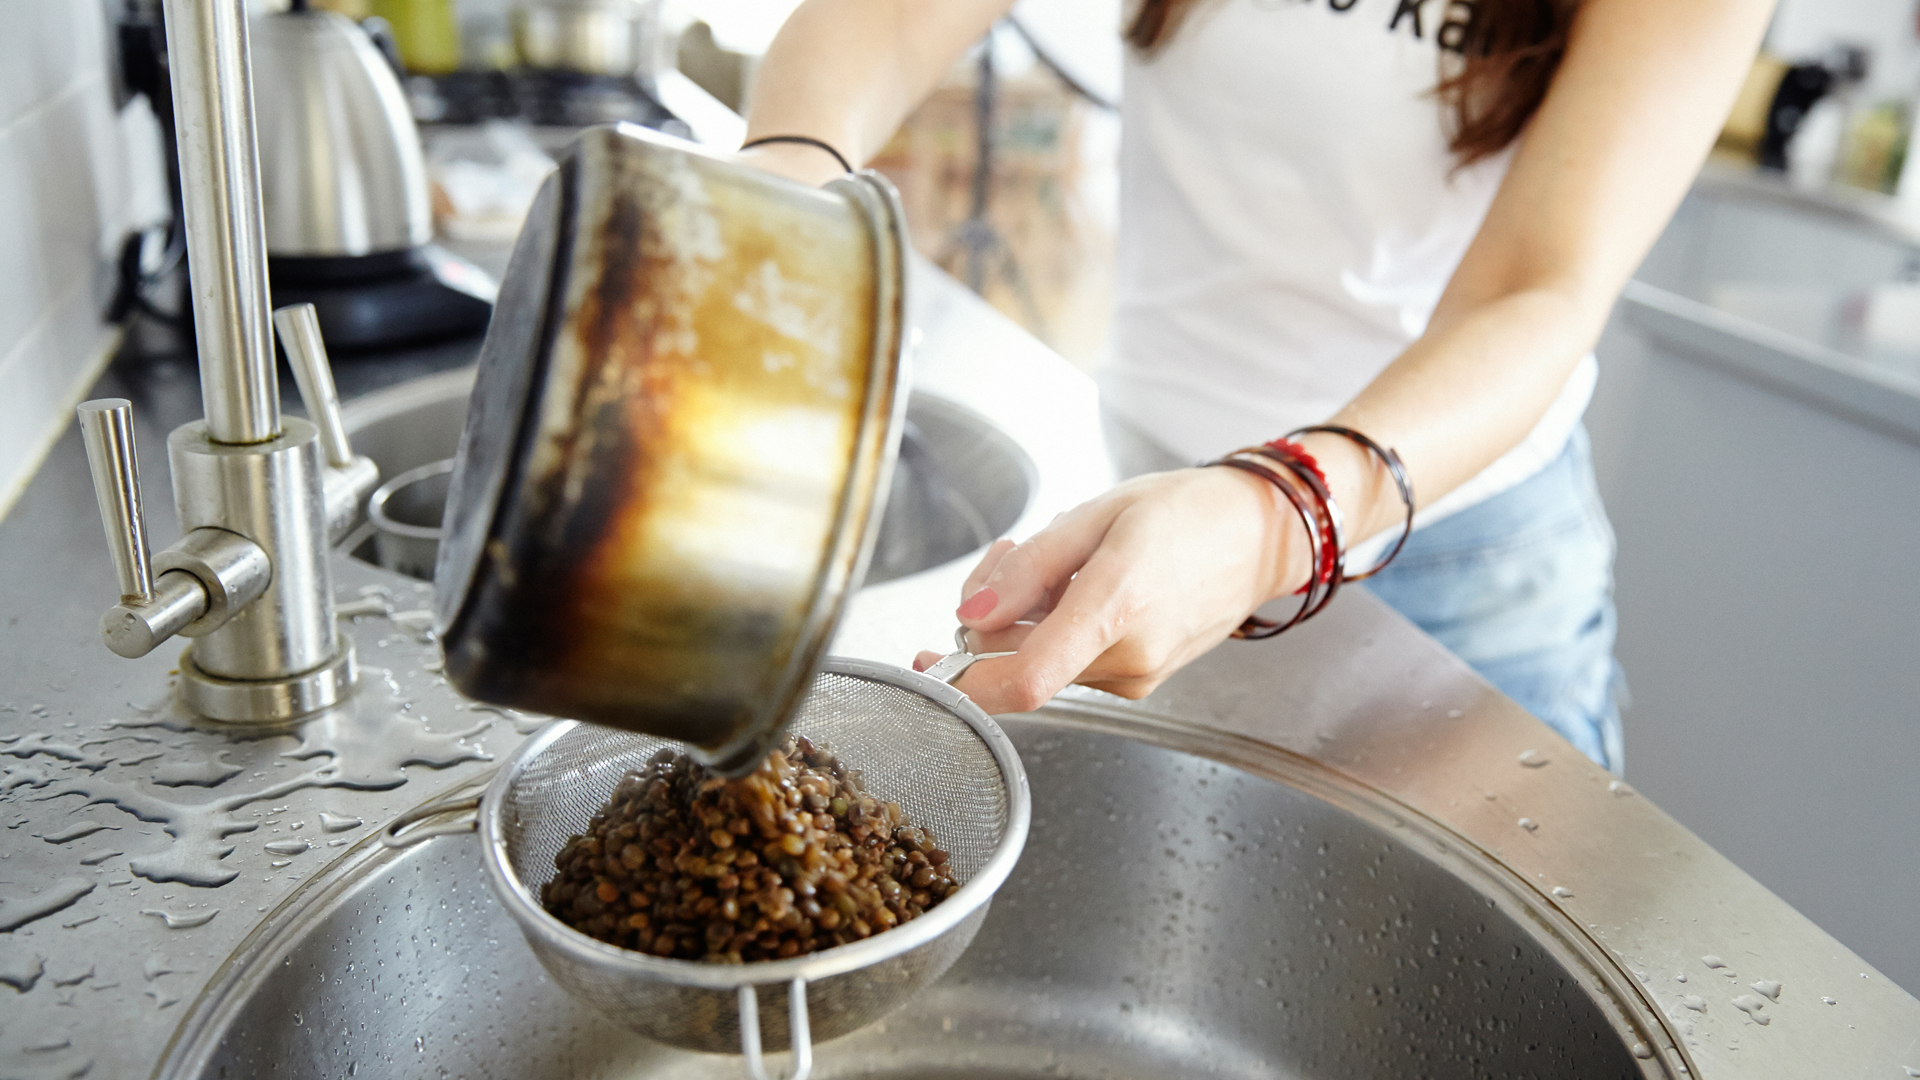 catherine-cuello-drains-puy-lentils-for-her-french-lentils-with-a-ton-of-herbs-recipe-foodadit